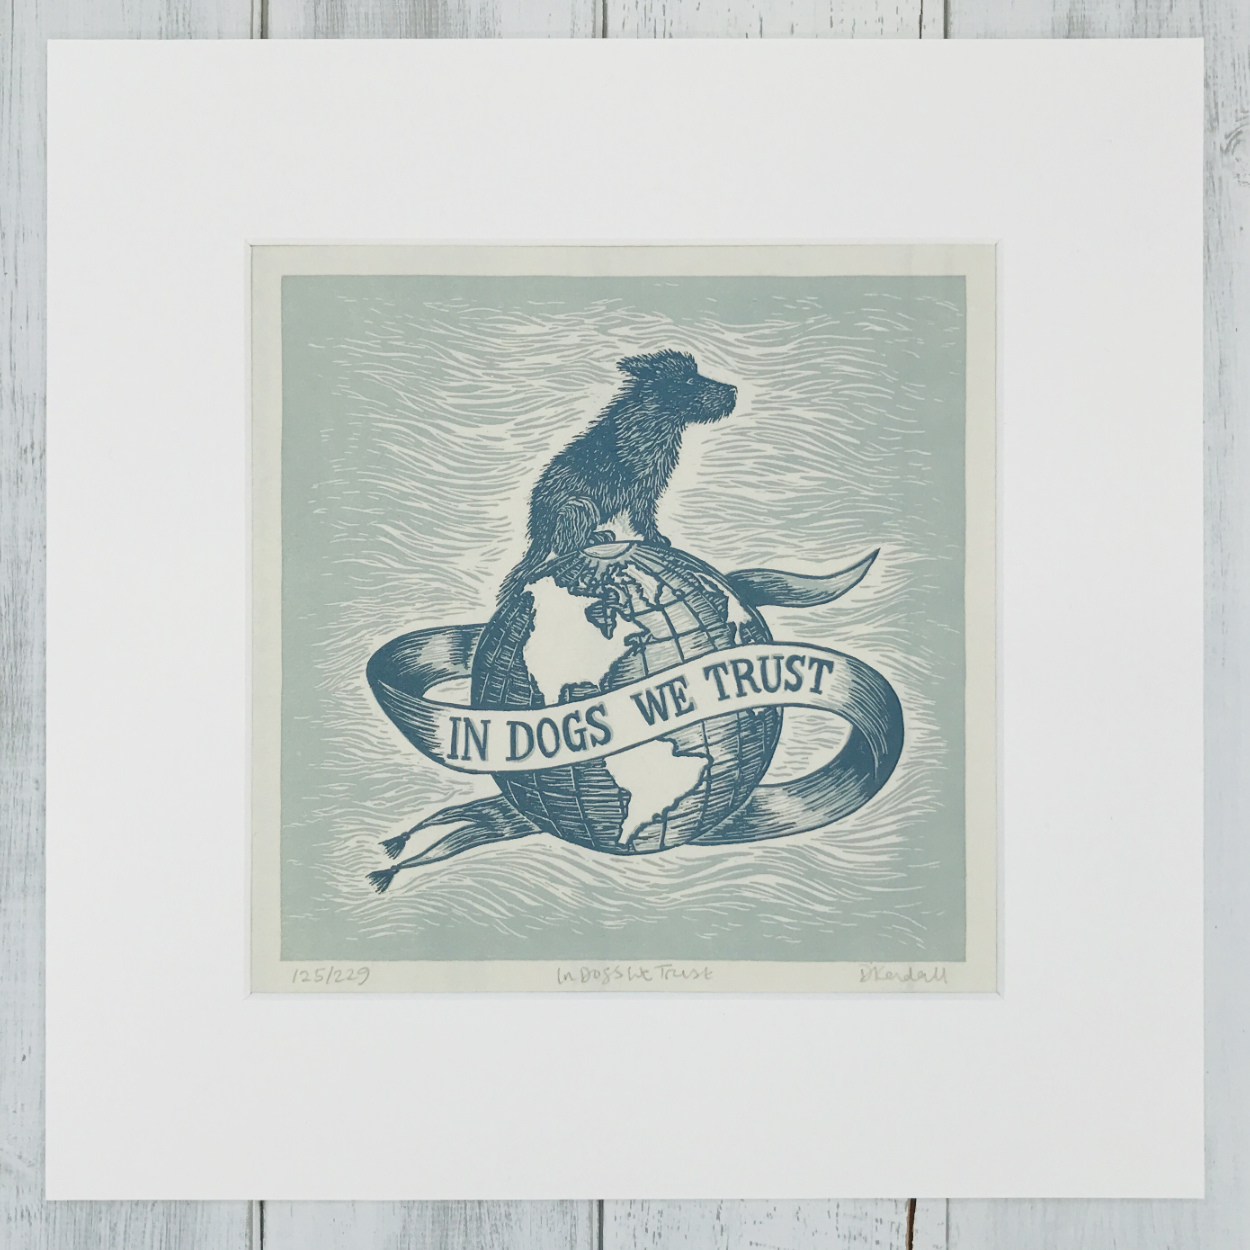 In Dogs We Trust Linoprint